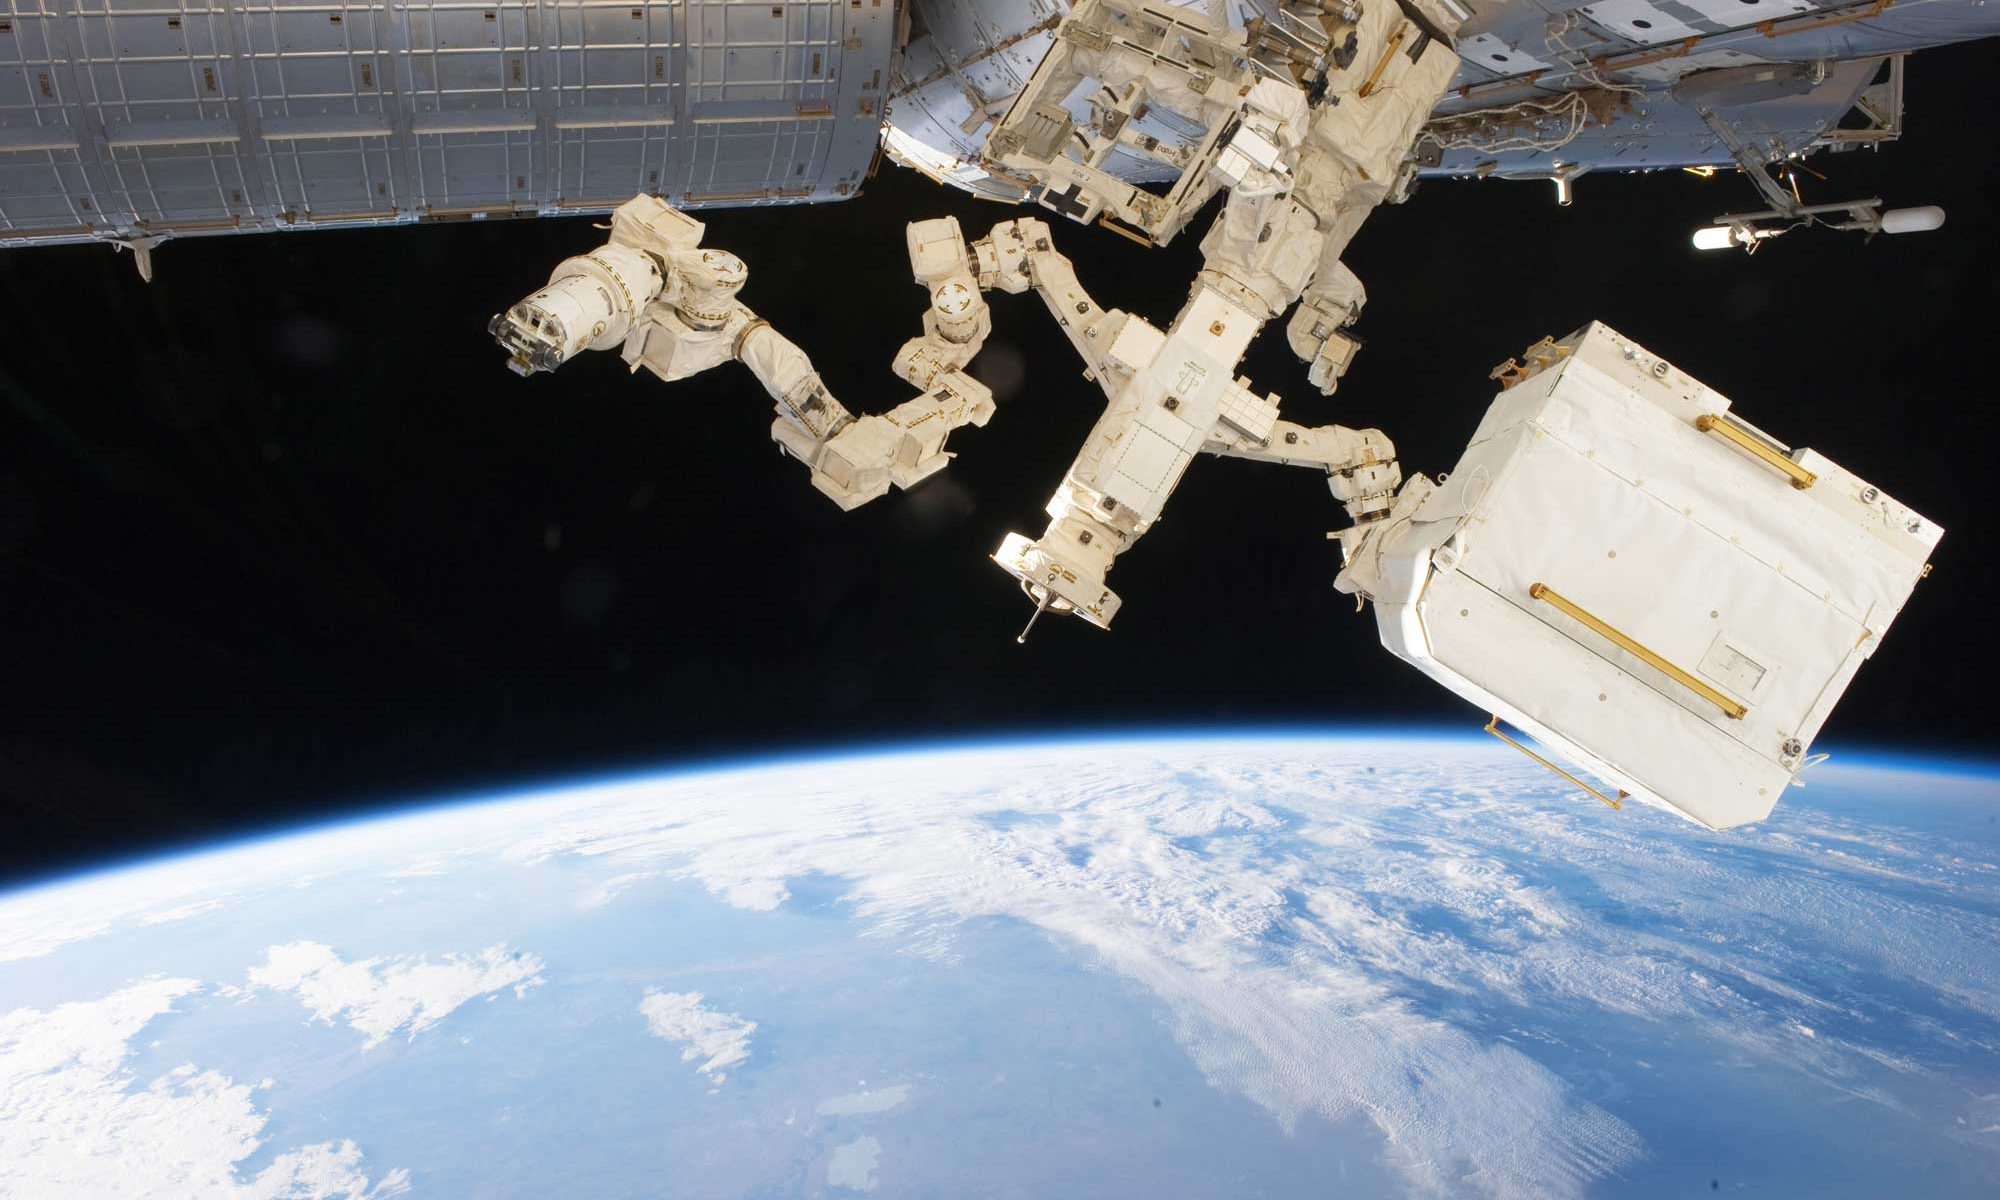 Dextre robot. Photo Credit: NASA - http://spaceflight.nasa.gov/gallery/images/station/crew-27/html/iss027e016182.html, Public Domain, https://commons.wikimedia.org/w/index.php?curid=15067534